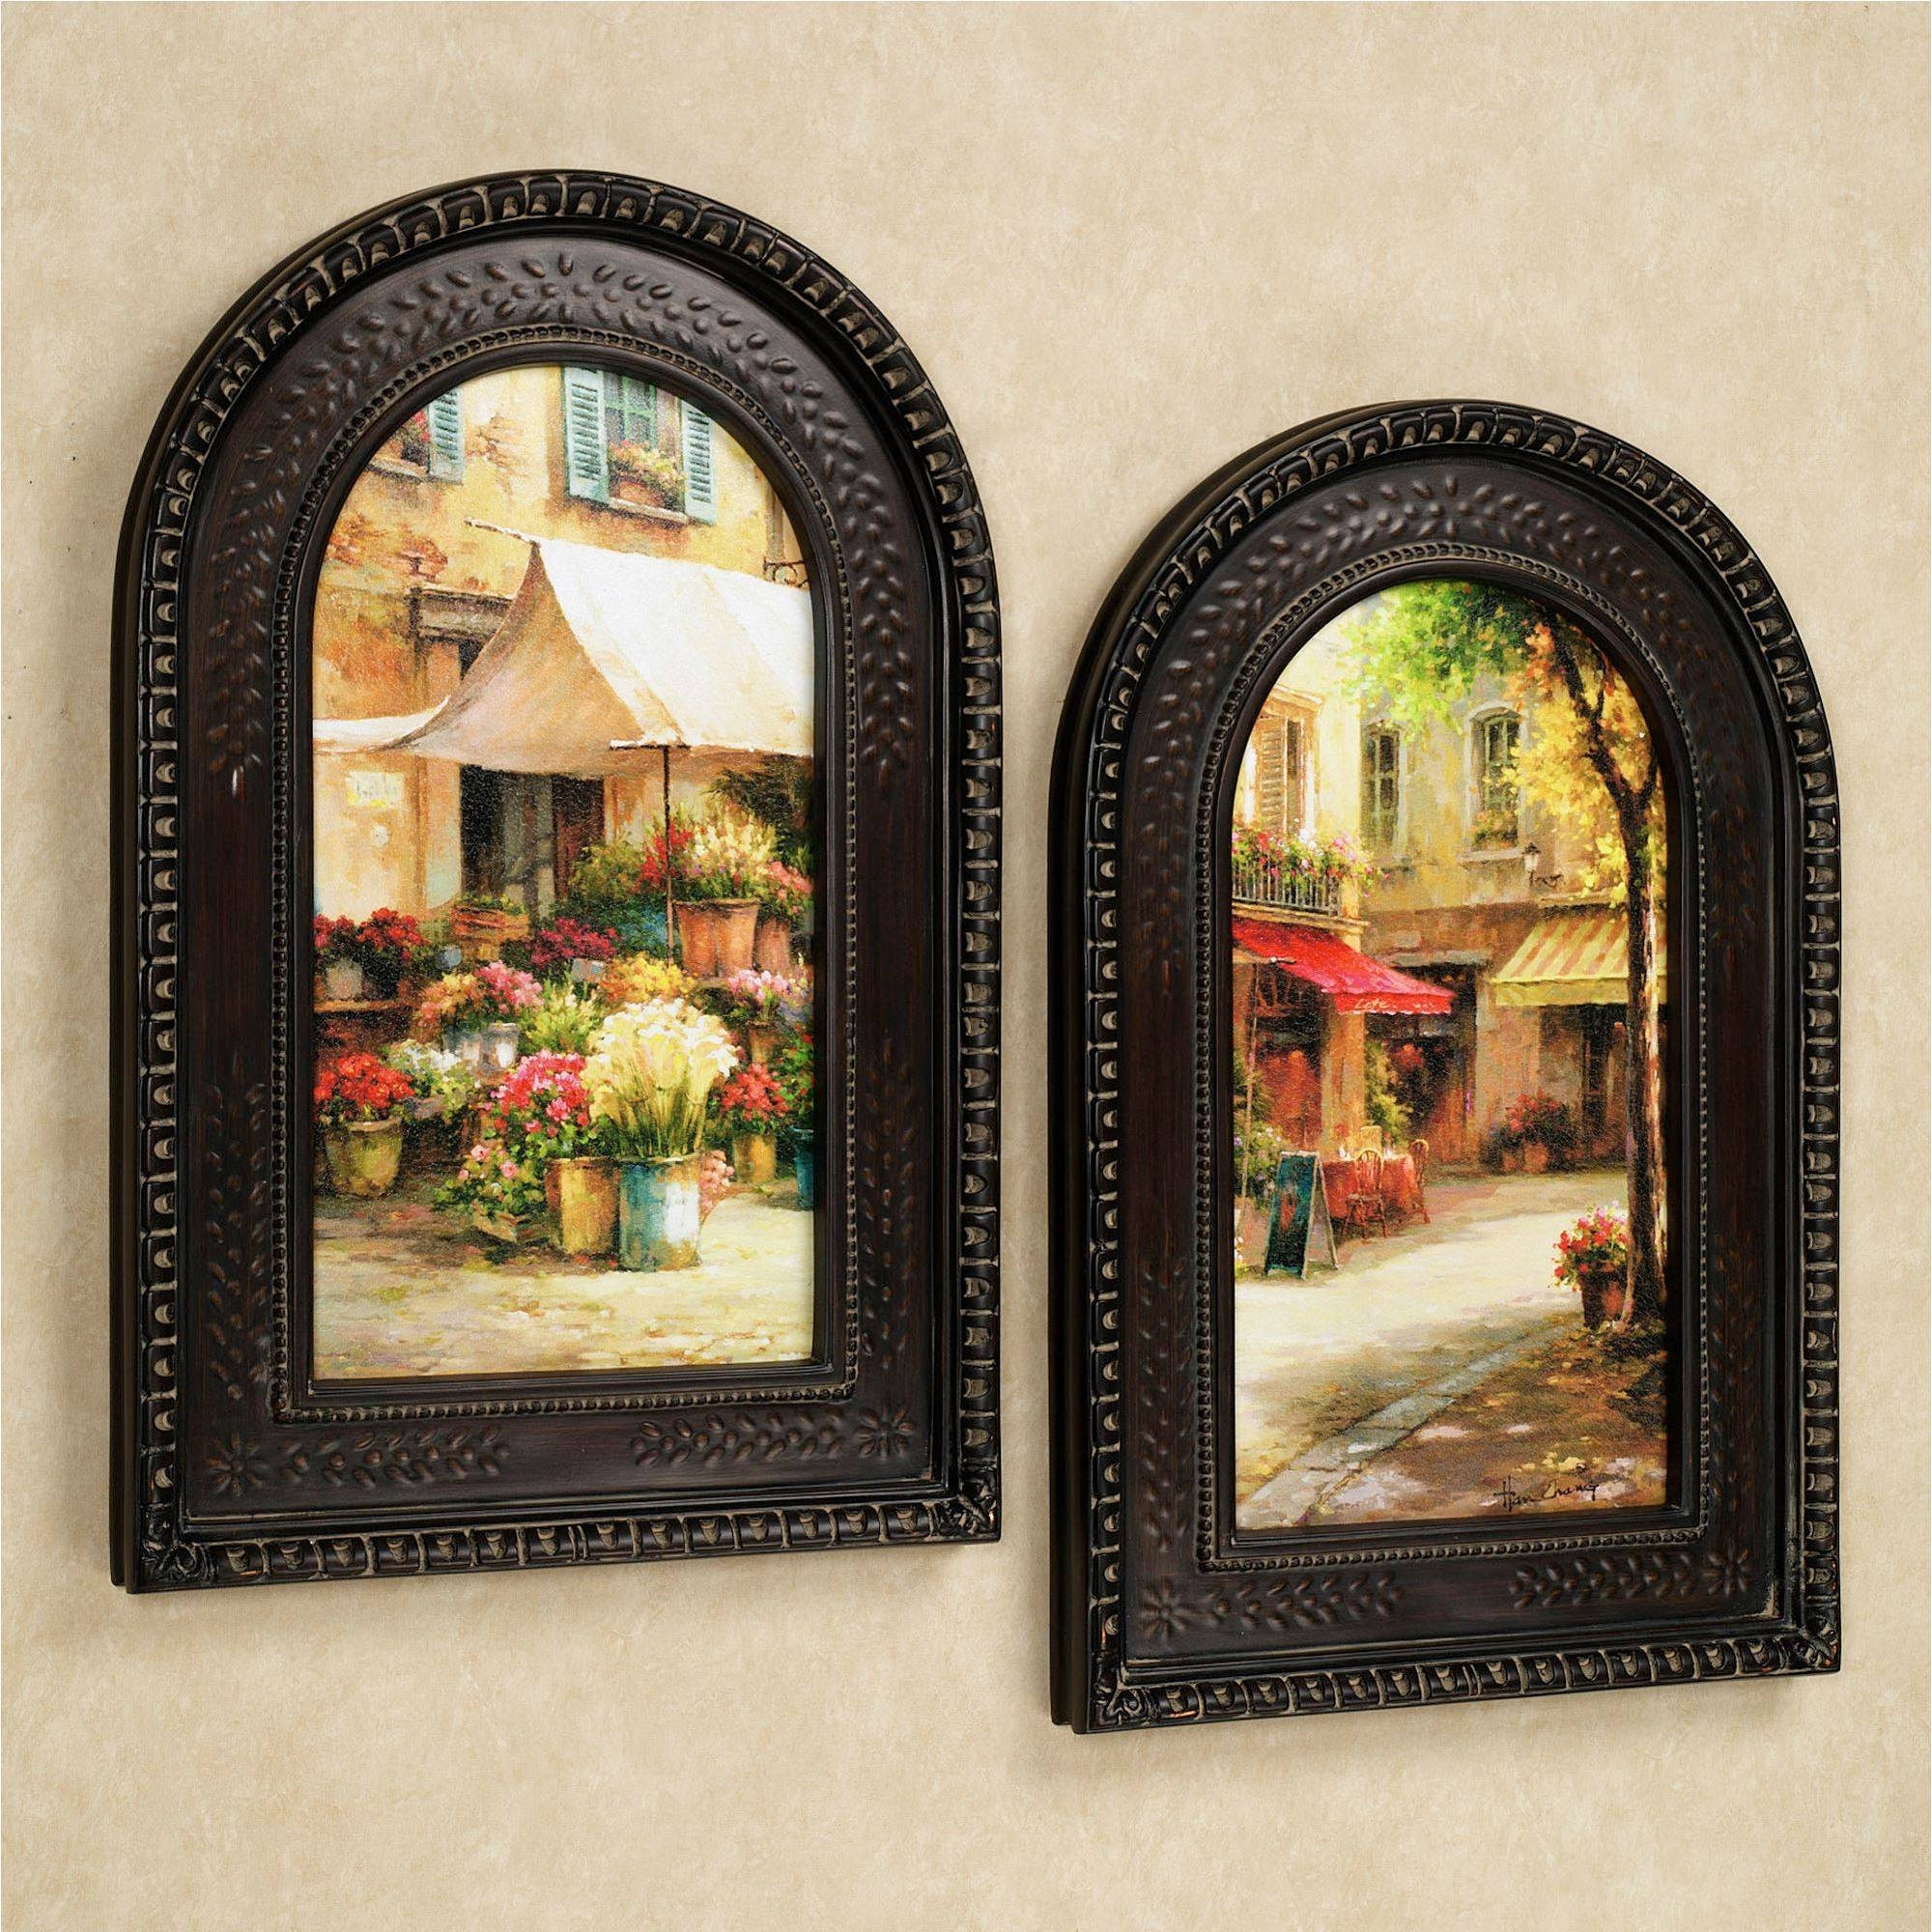 Remarkable Decoration Framed Wall Art Sets Exclusive Ideas Wall In Most Current Cheap Wall Art Sets (View 12 of 20)